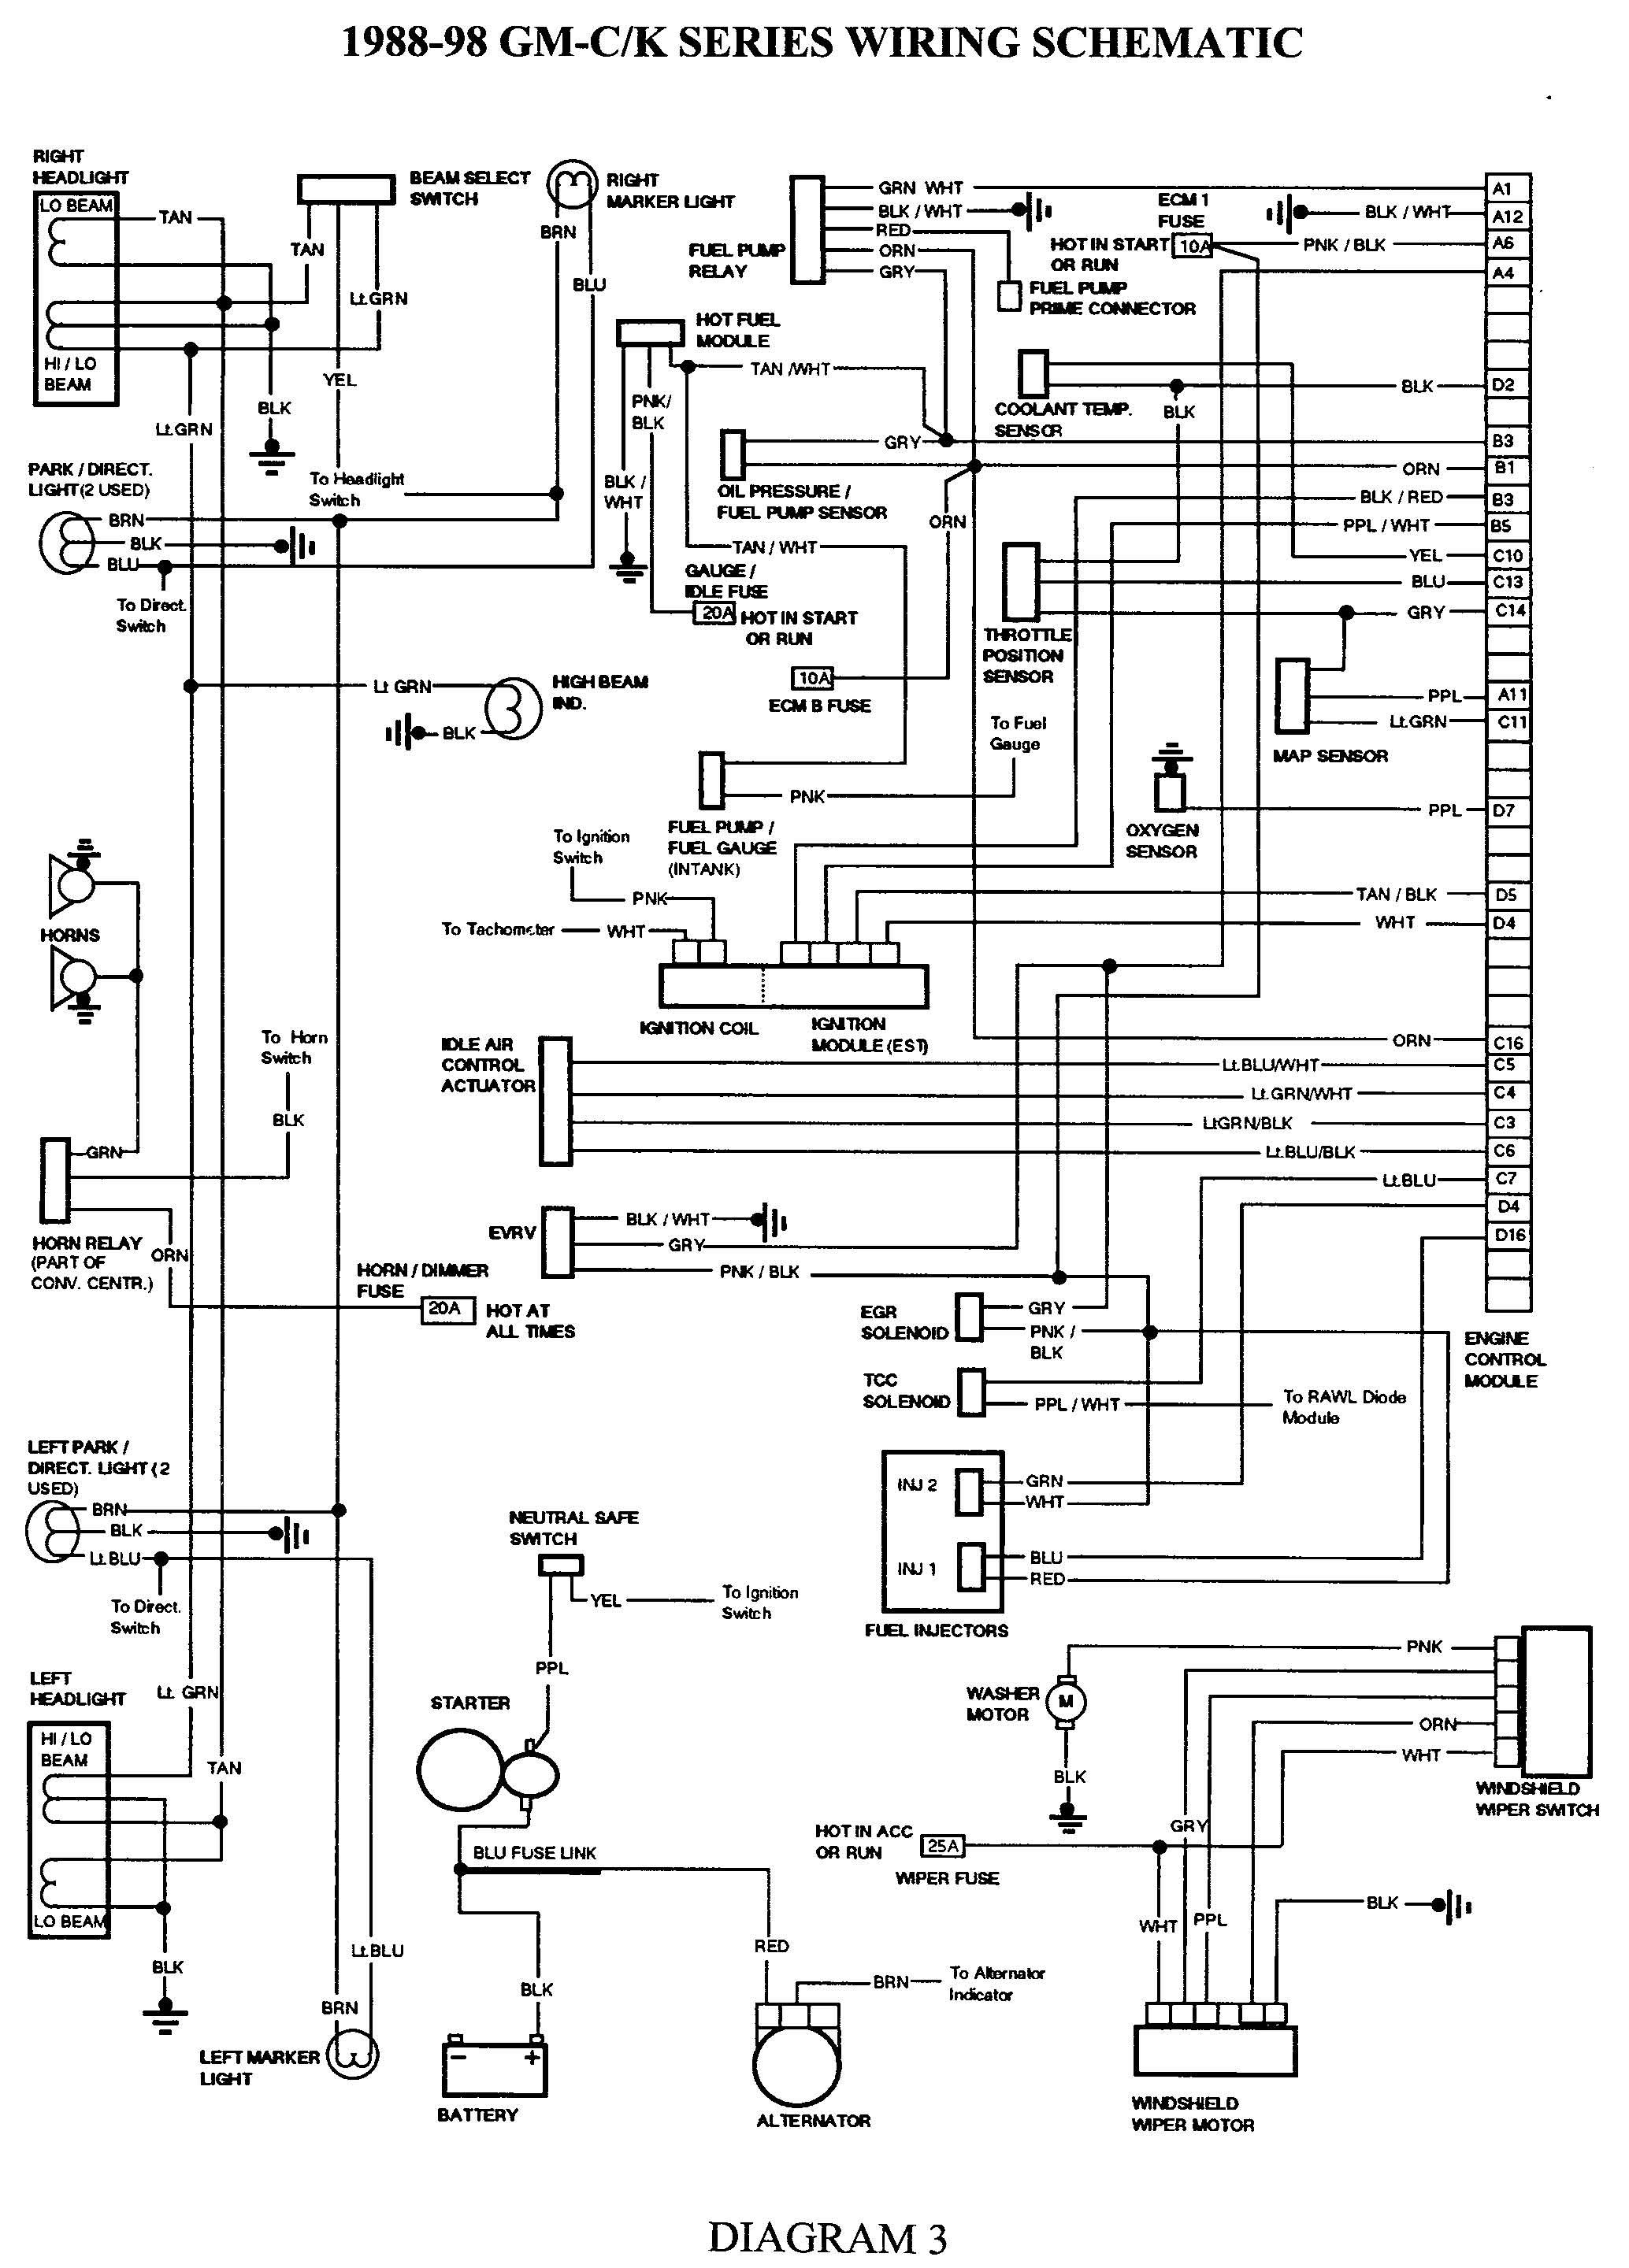 gmc truck wiring diagrams on gm wiring harness diagram 88 98 kc diagram they had different wires after 1988 here is the gauge wires [ 2068 x 2880 Pixel ]